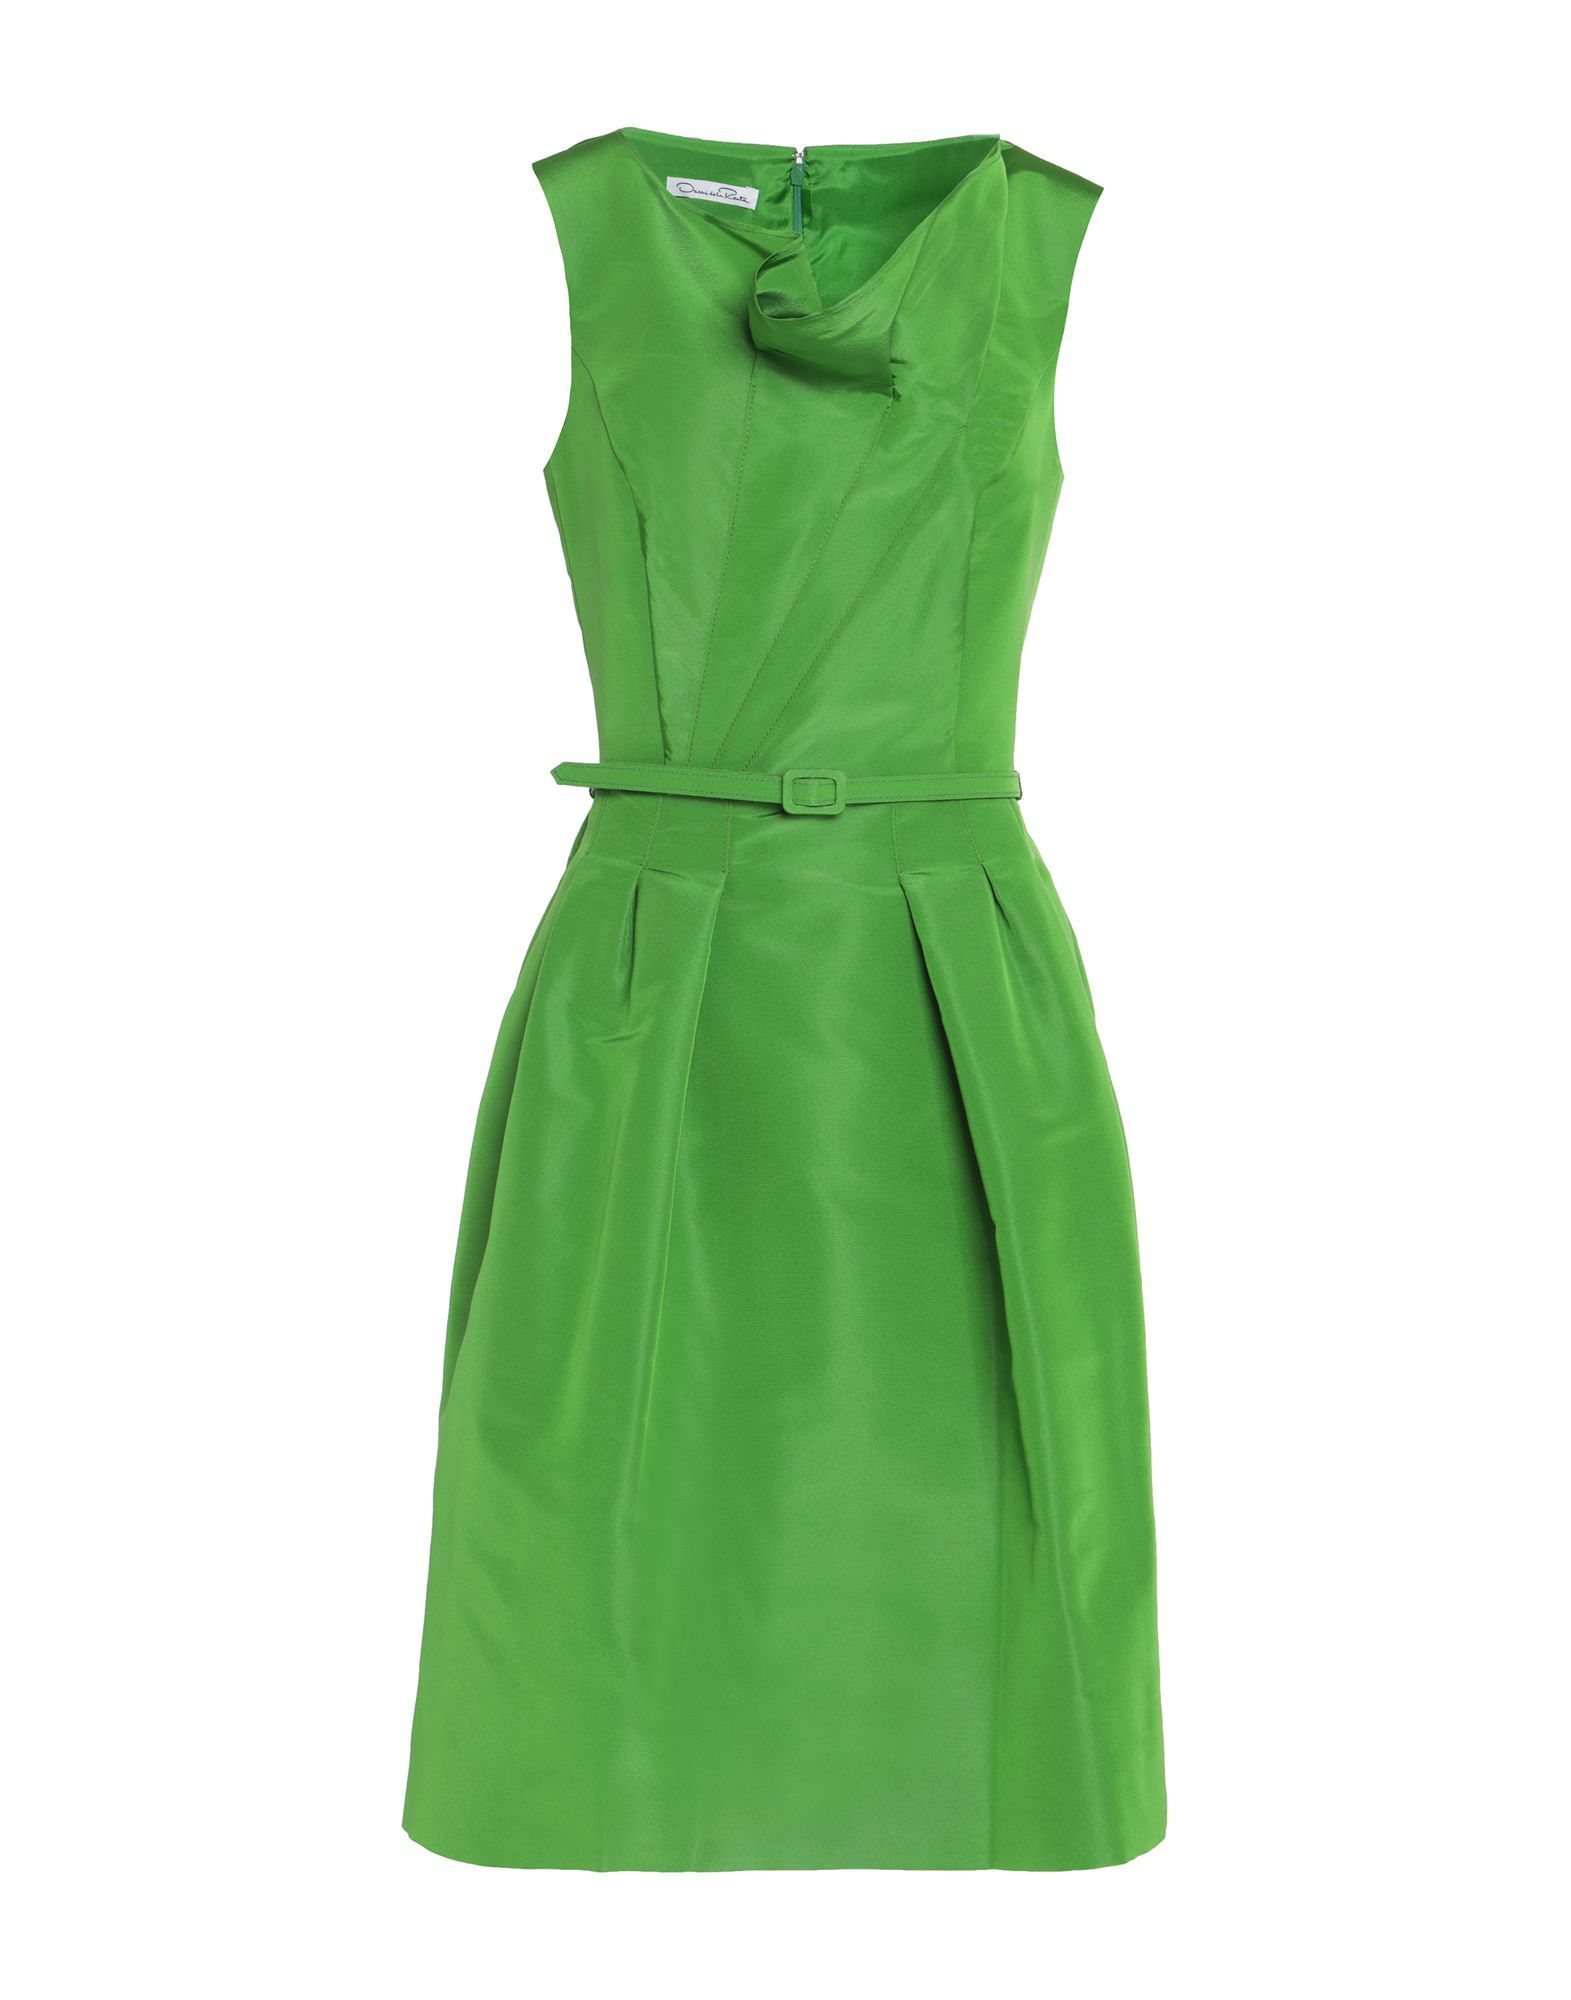 Oscar De La Renta Green Silk Knee-Length Dress